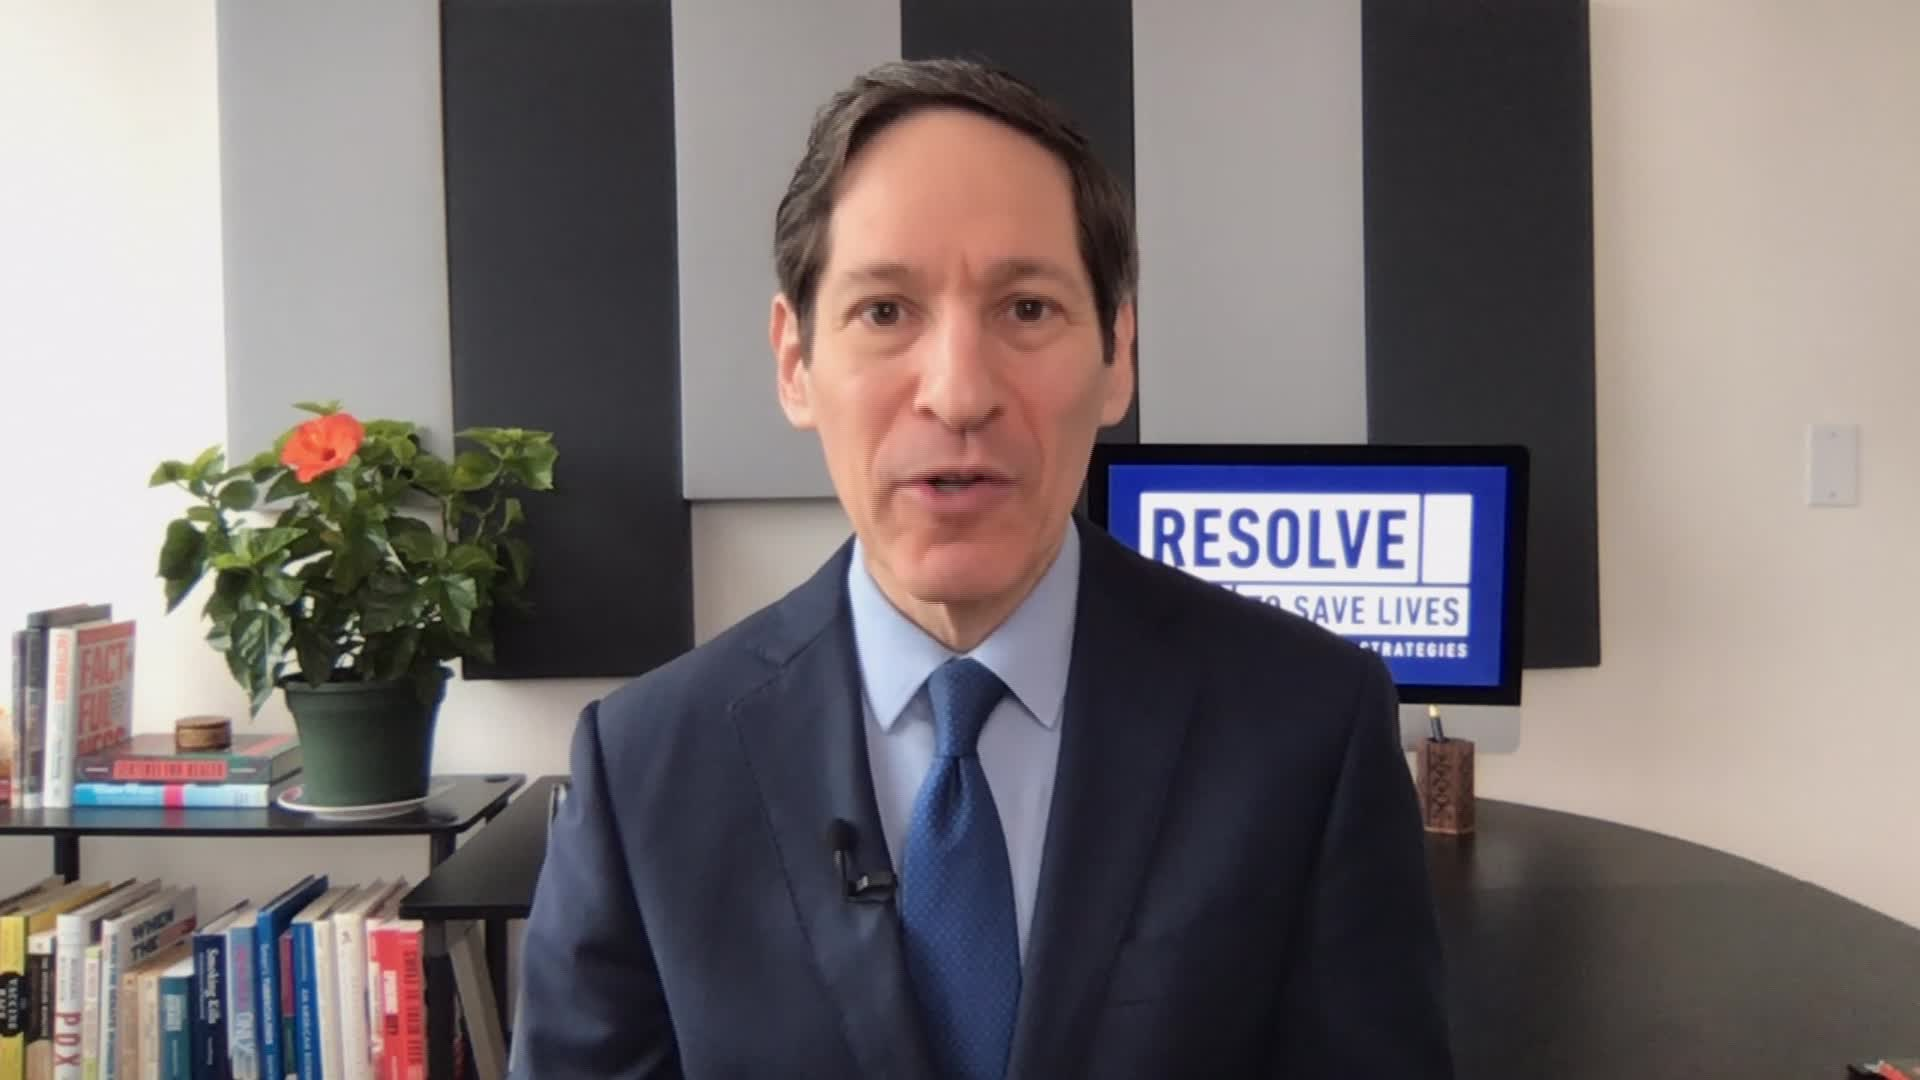 Dr. Tom Frieden, former director of the US Center for Disease Control and Prevention, speaks during an interview on November 11.